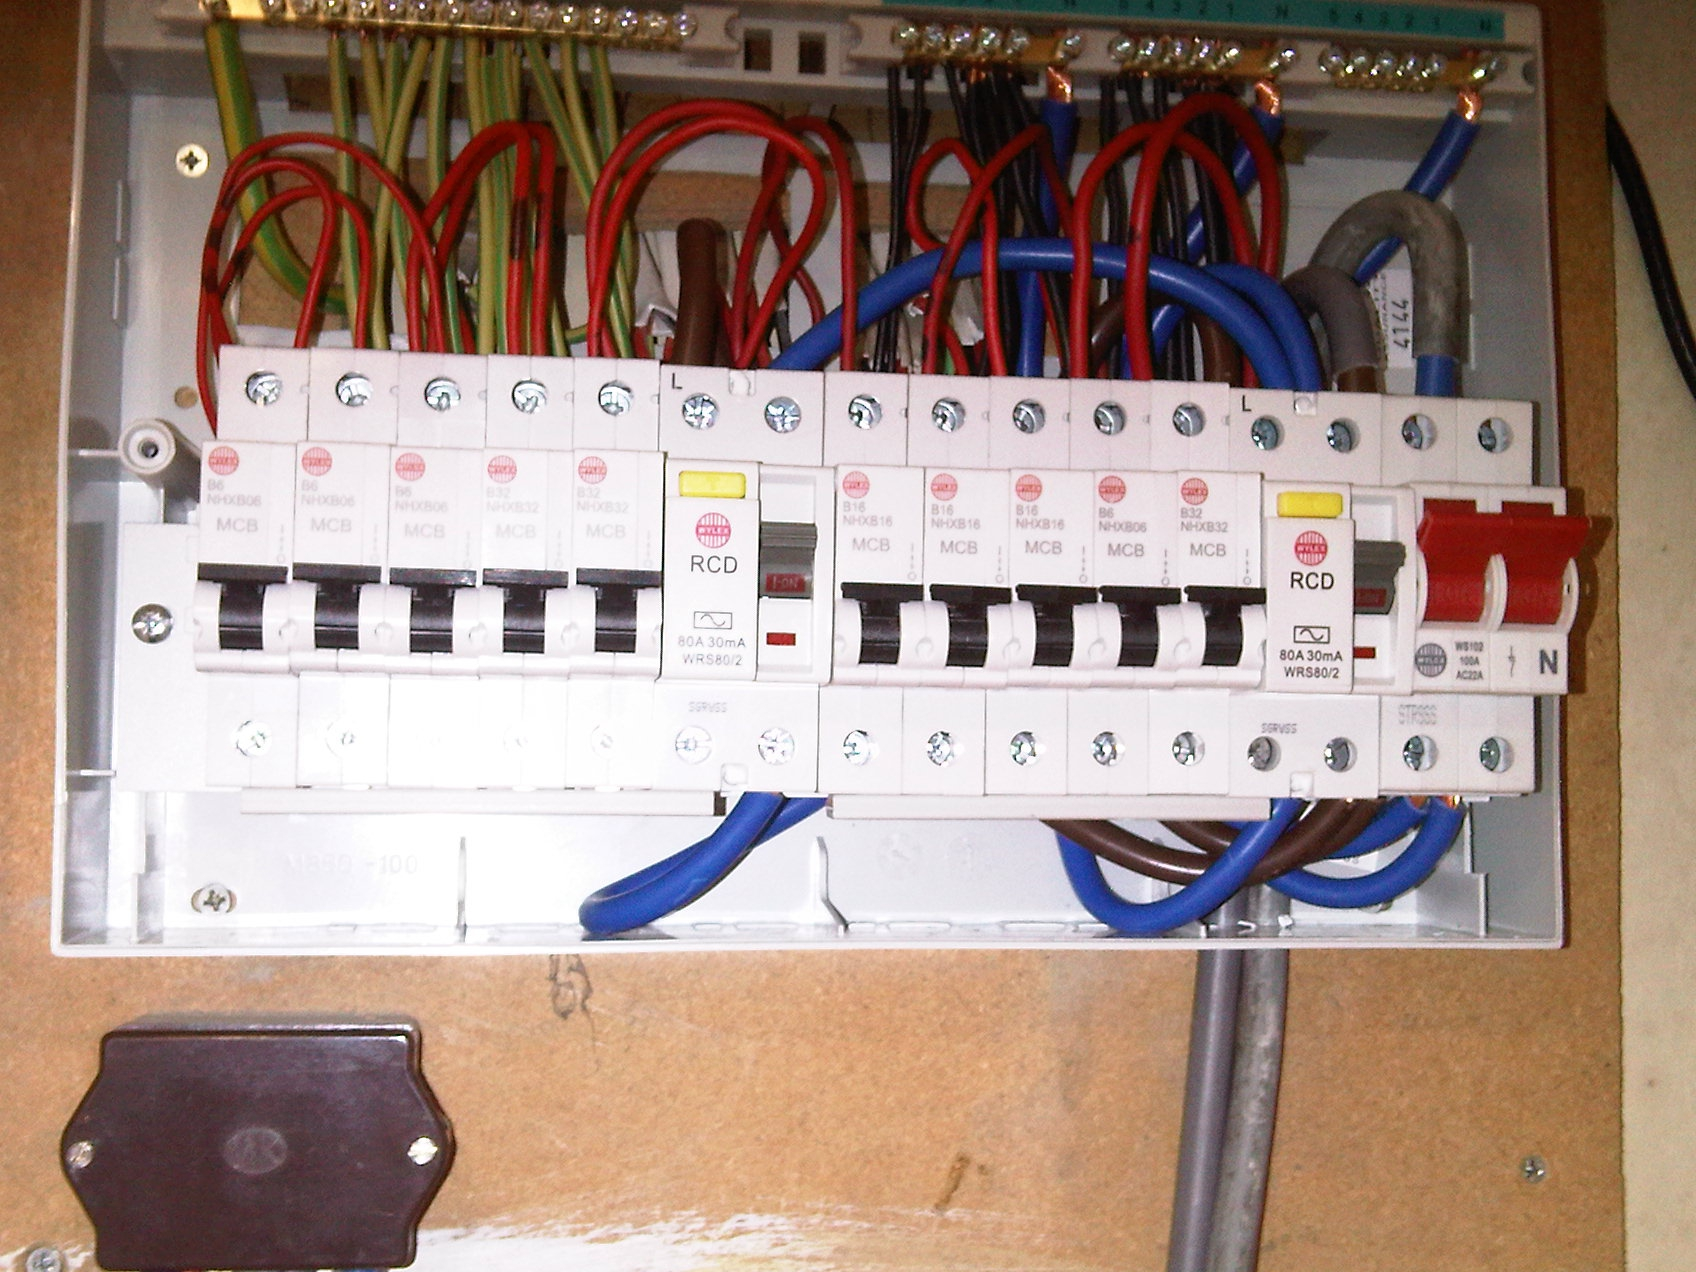 Fusebox 4 household fuse box residential fuse boxes \u2022 wiring diagrams j home fuse box explained at fashall.co